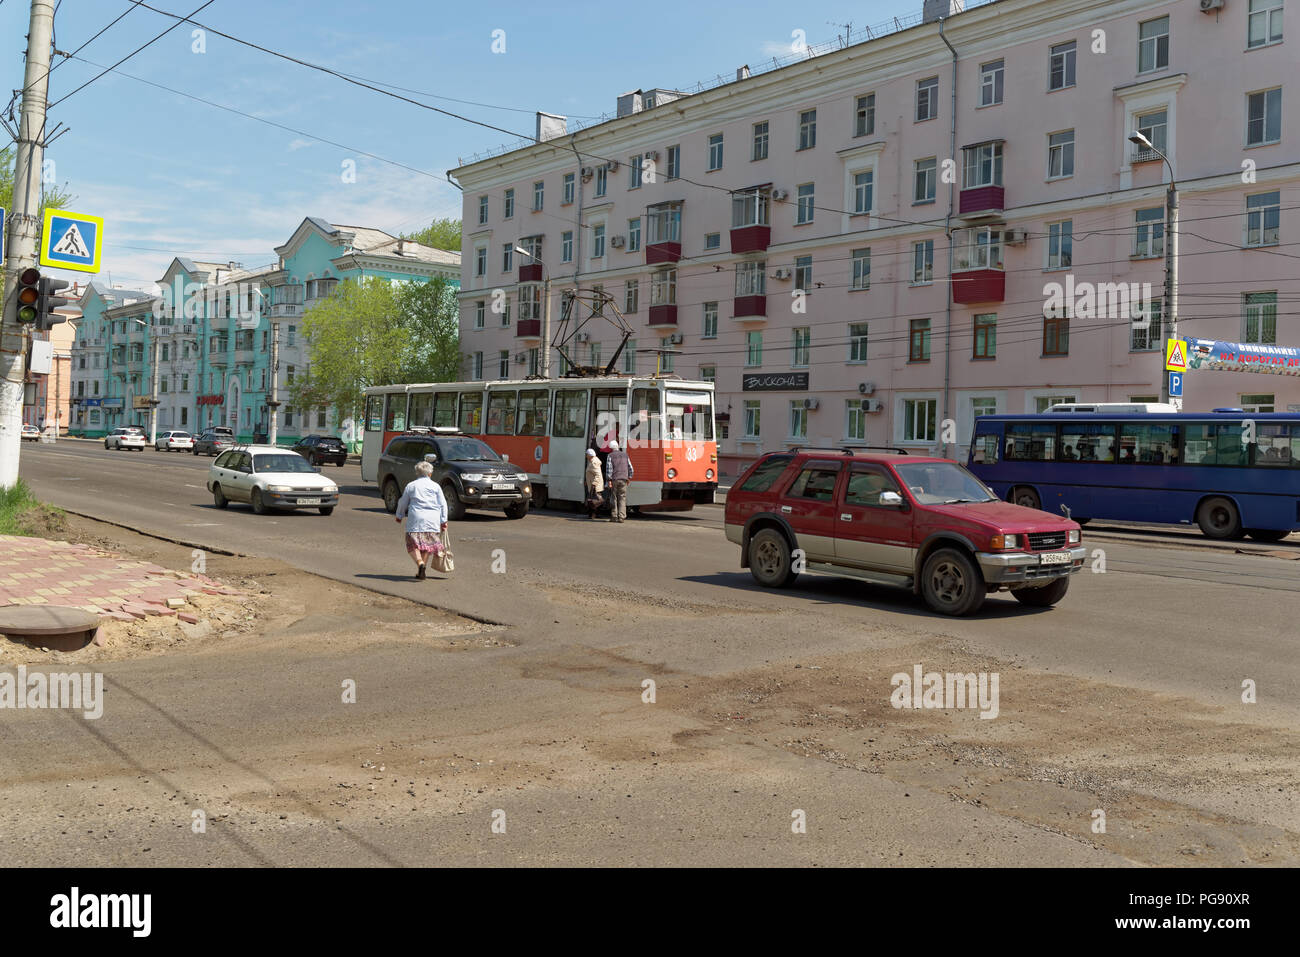 Komsomolsk-on-Amur, Russia - May 25, 2018: Old red tram on the rail station 'Hotel Voskhod' in the middle line of the street 'Prospekt Lenina' - Stock Image